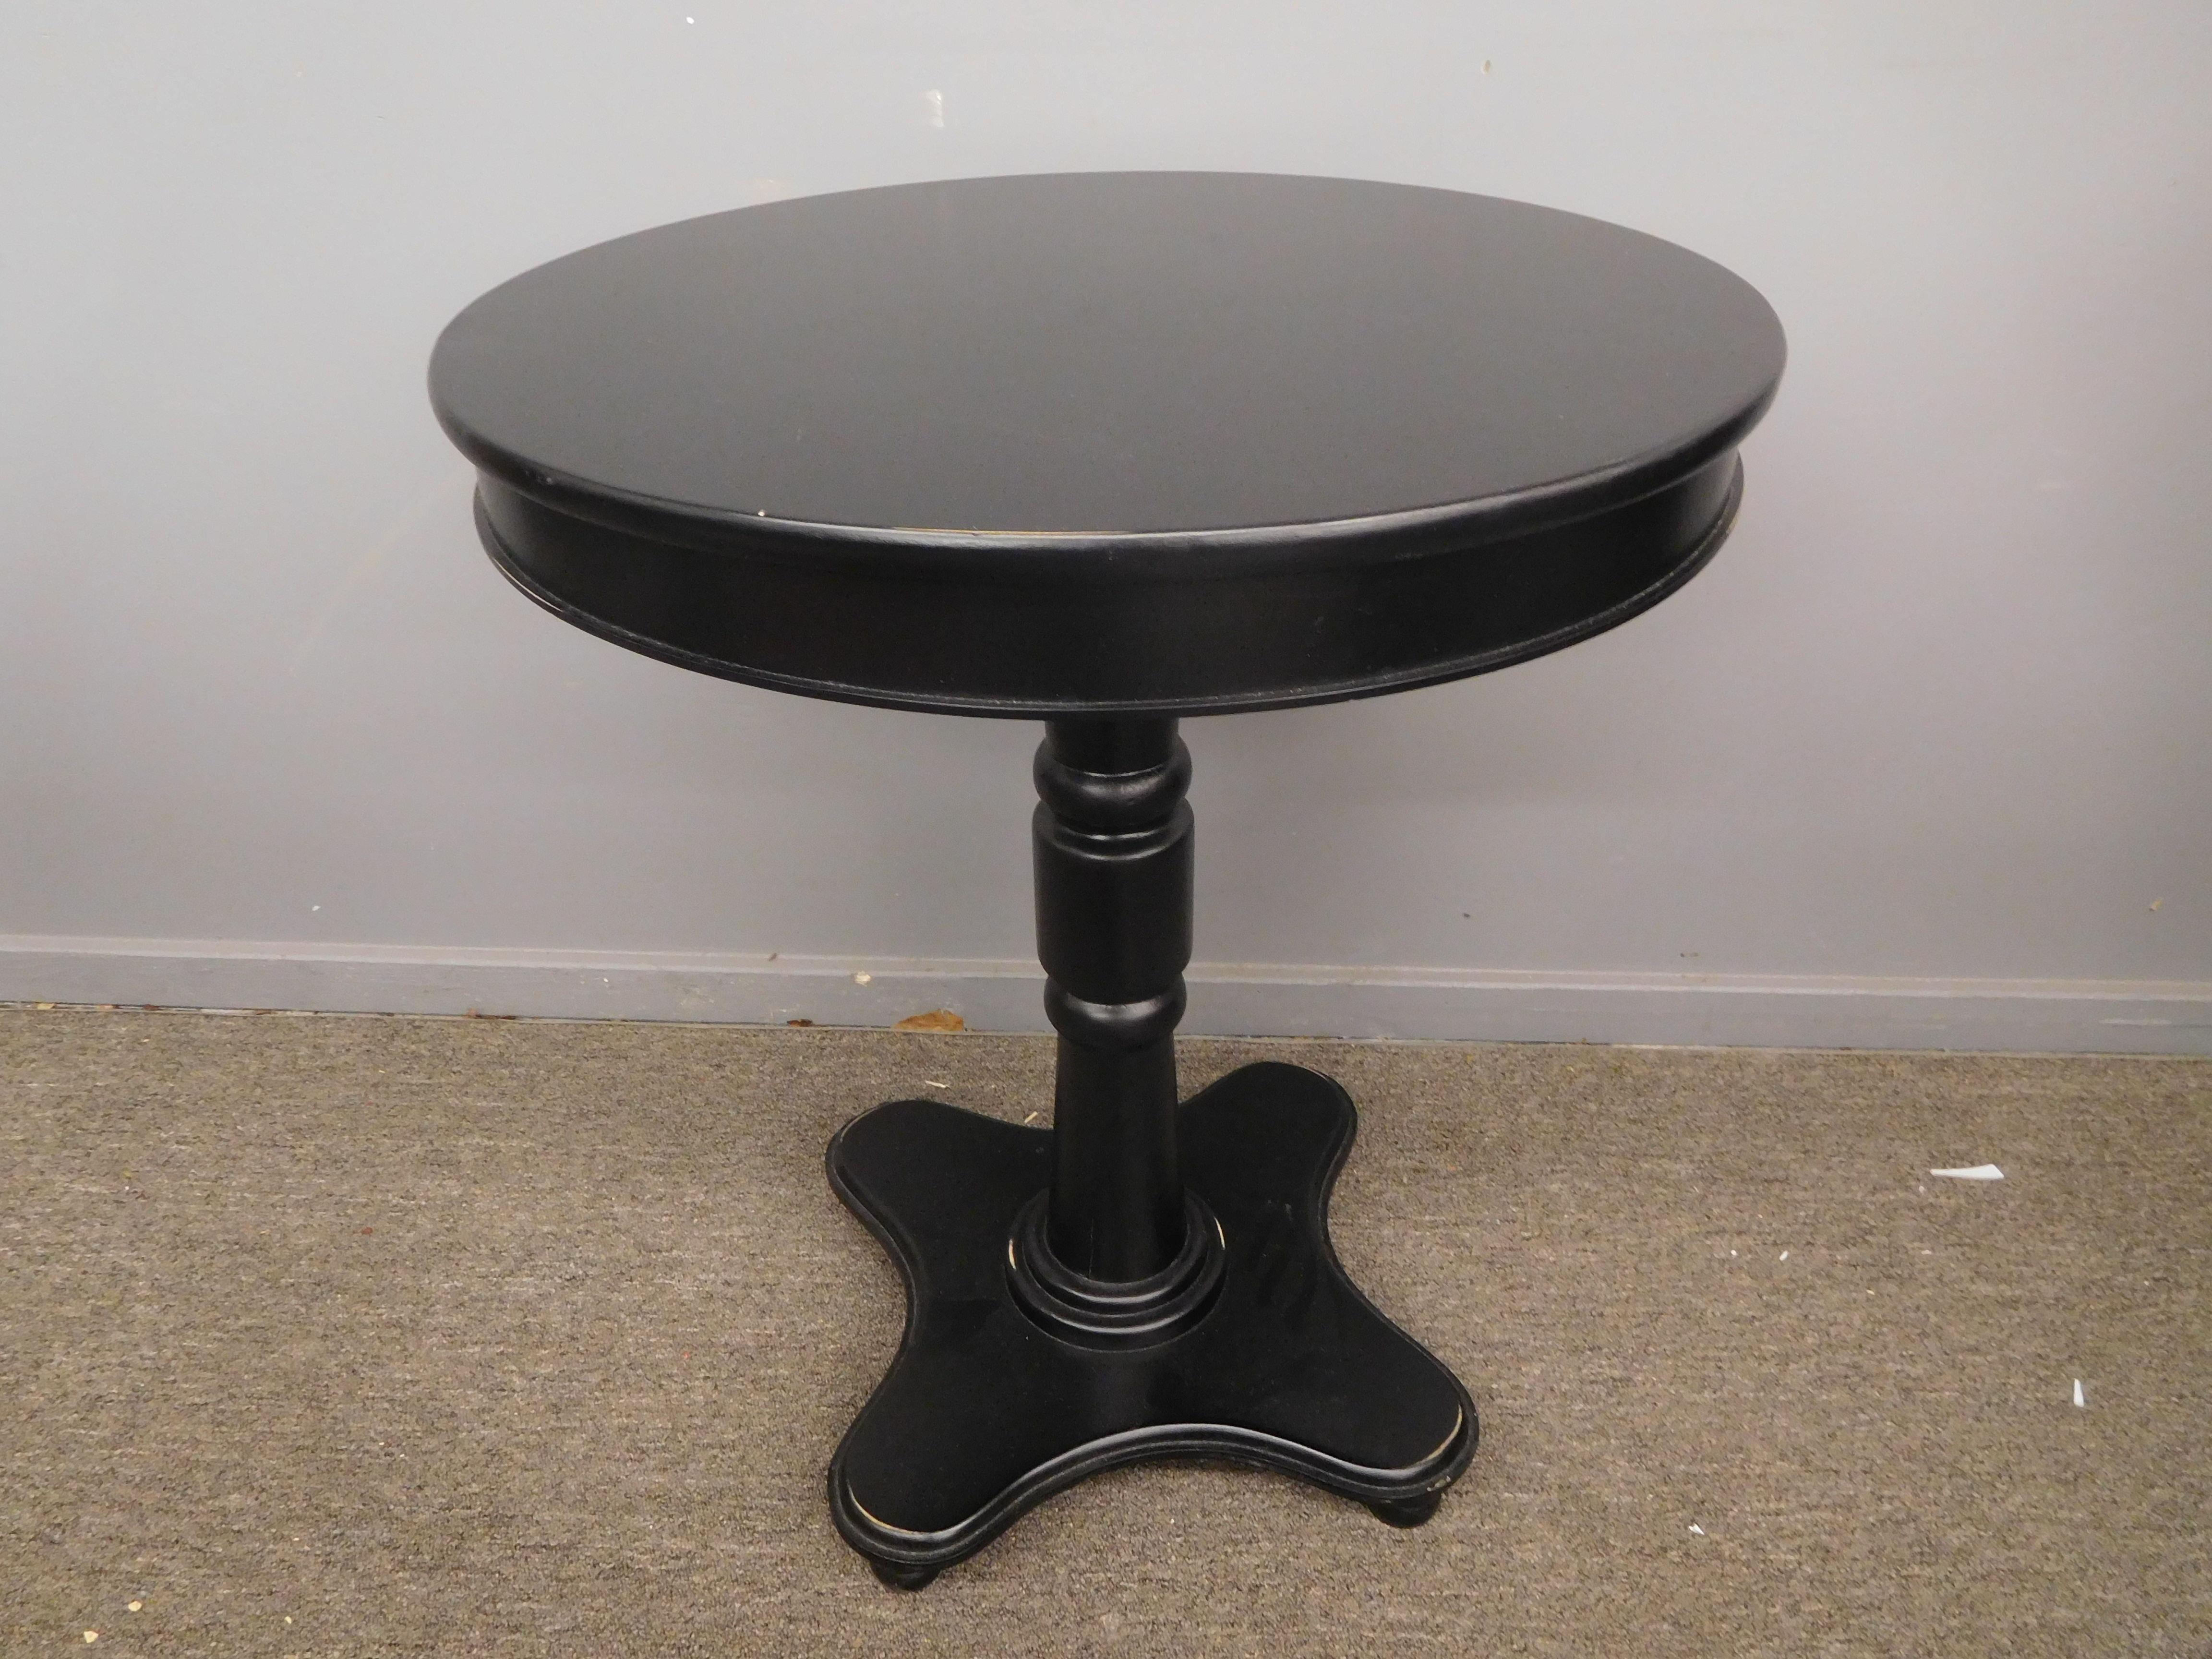 Small Round Black Accent Table or Bistro Table for 2